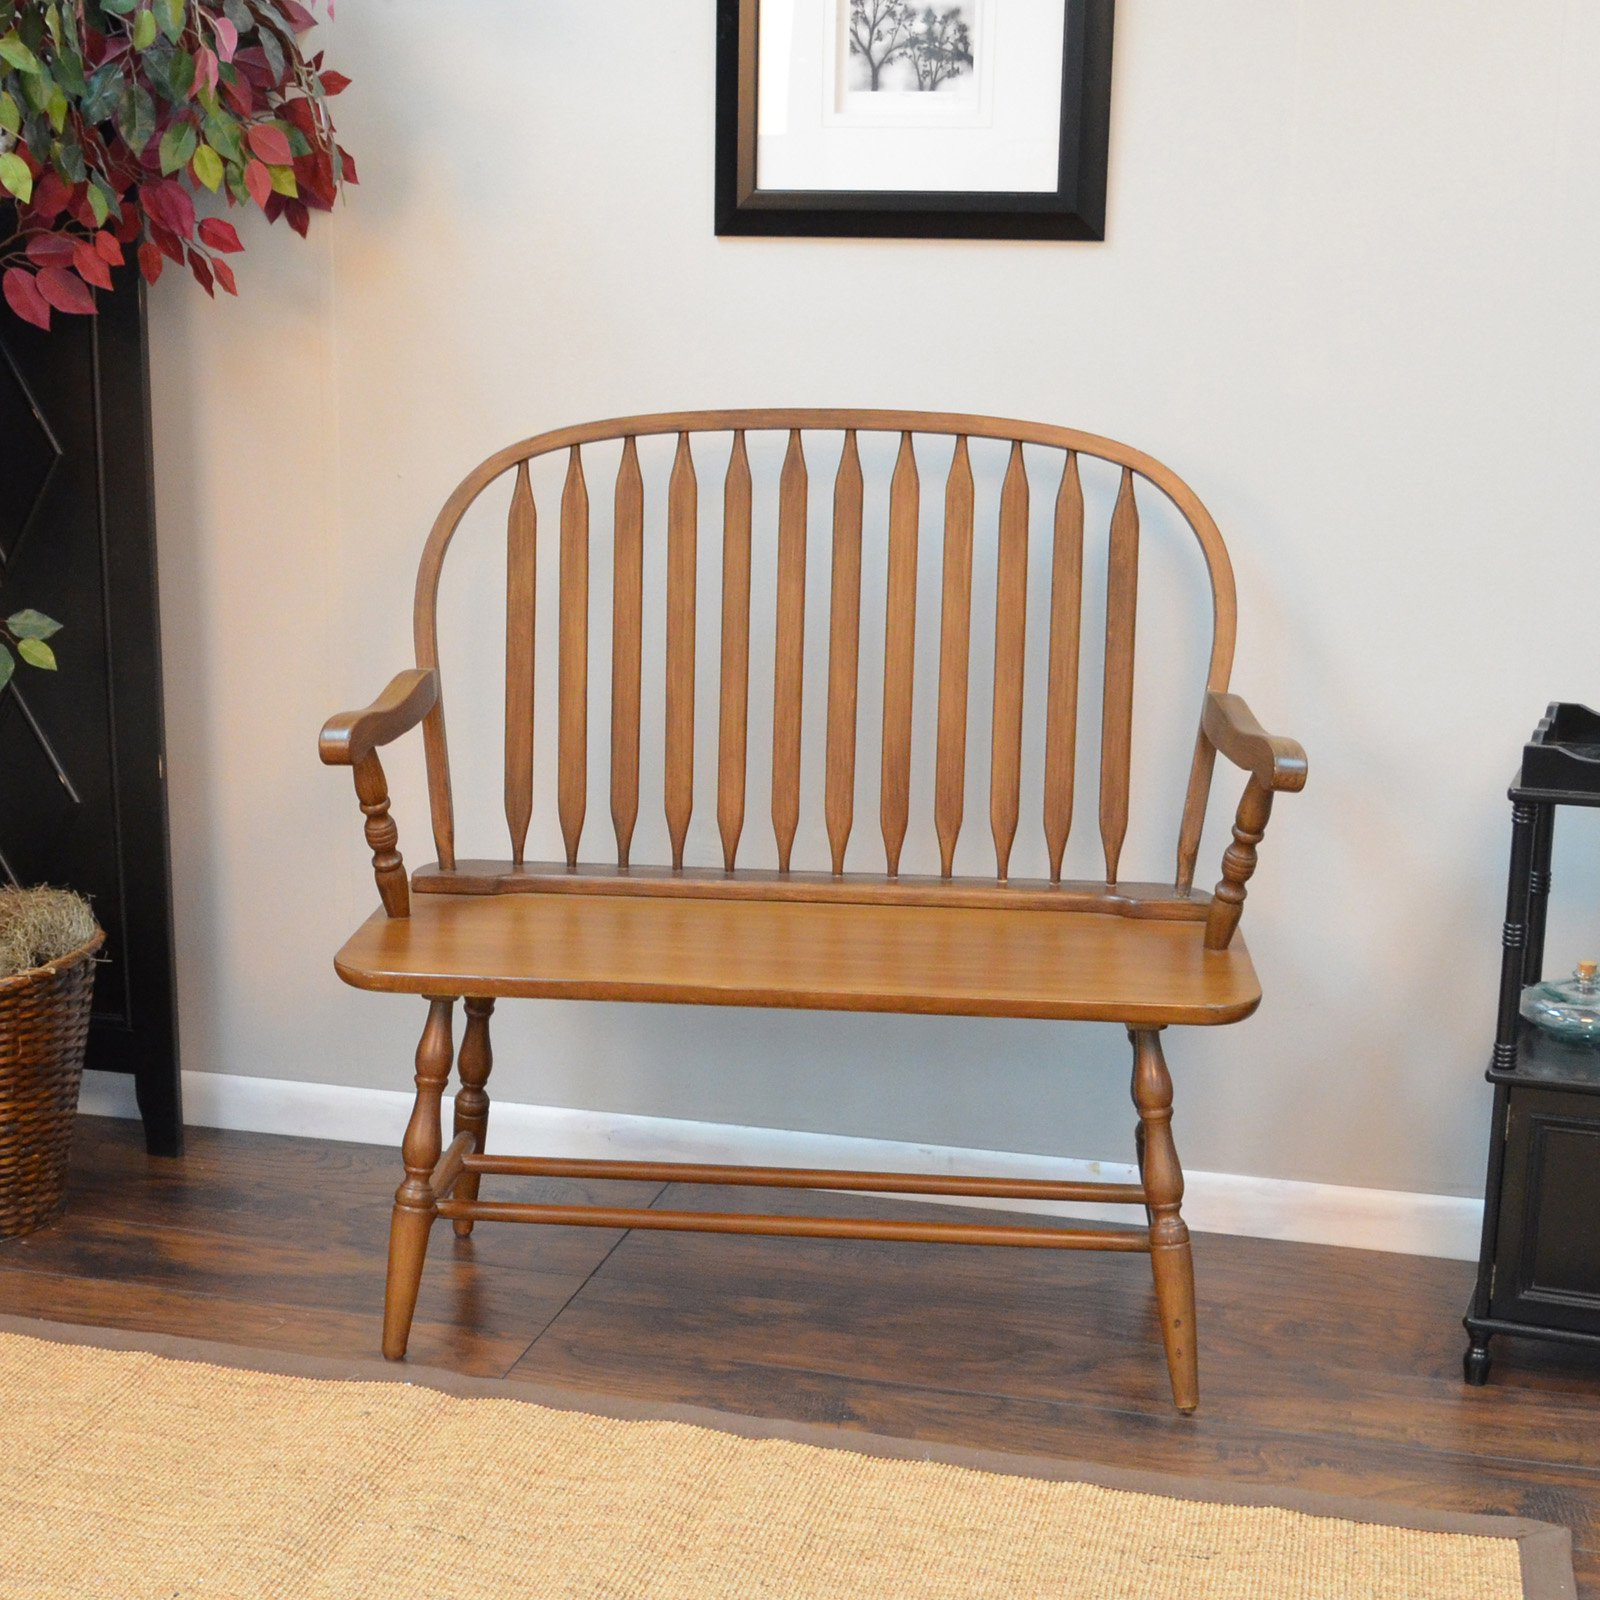 Carolina Chair and Table Windsor Bench - Walmart.com